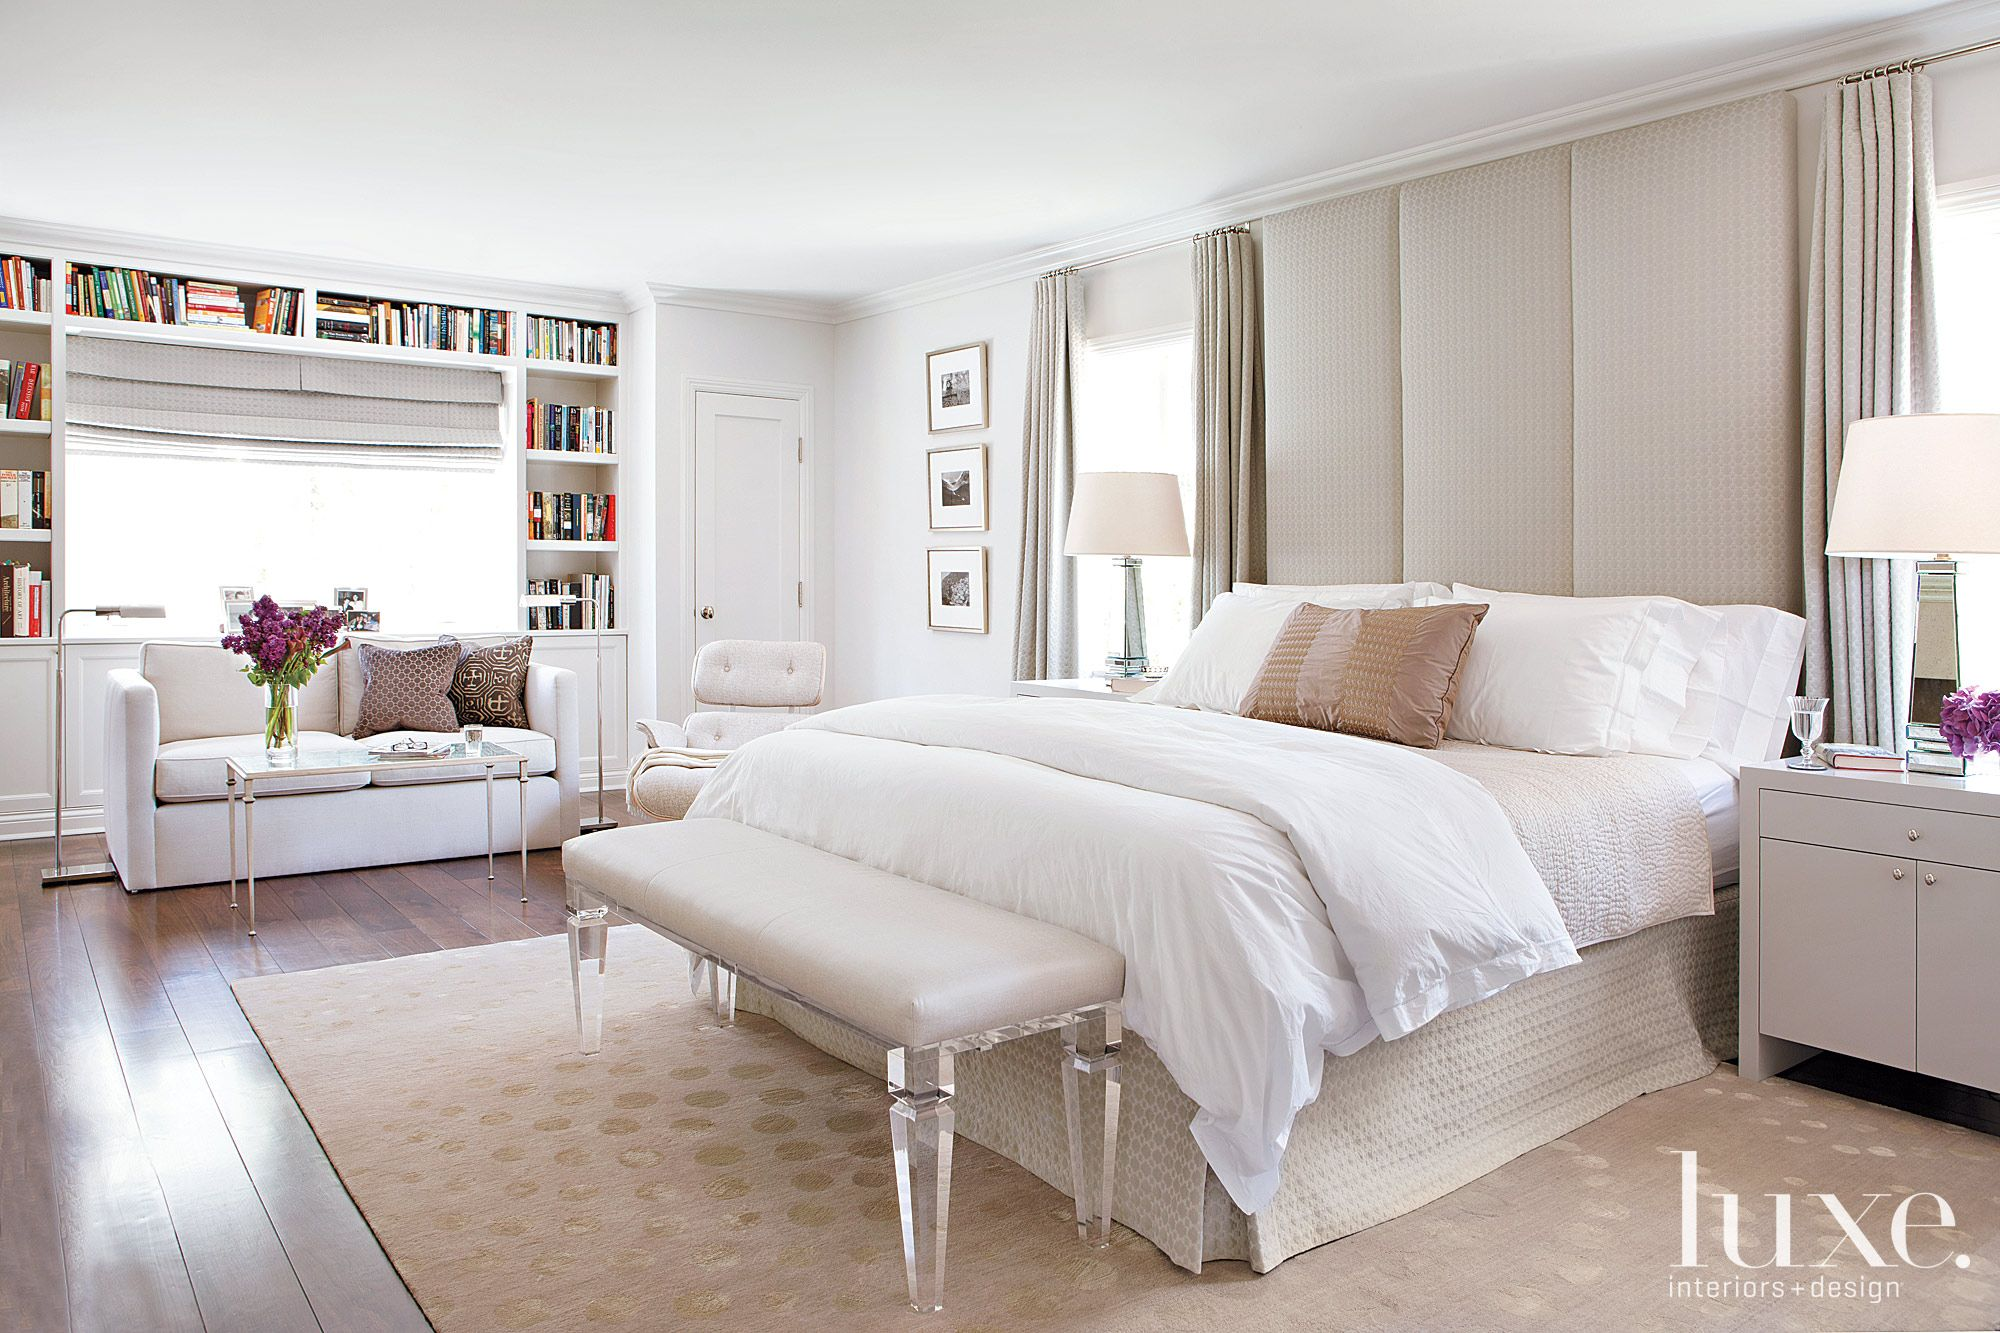 Contemporary White Bedroom with Floor-to-Ceiling Headboard